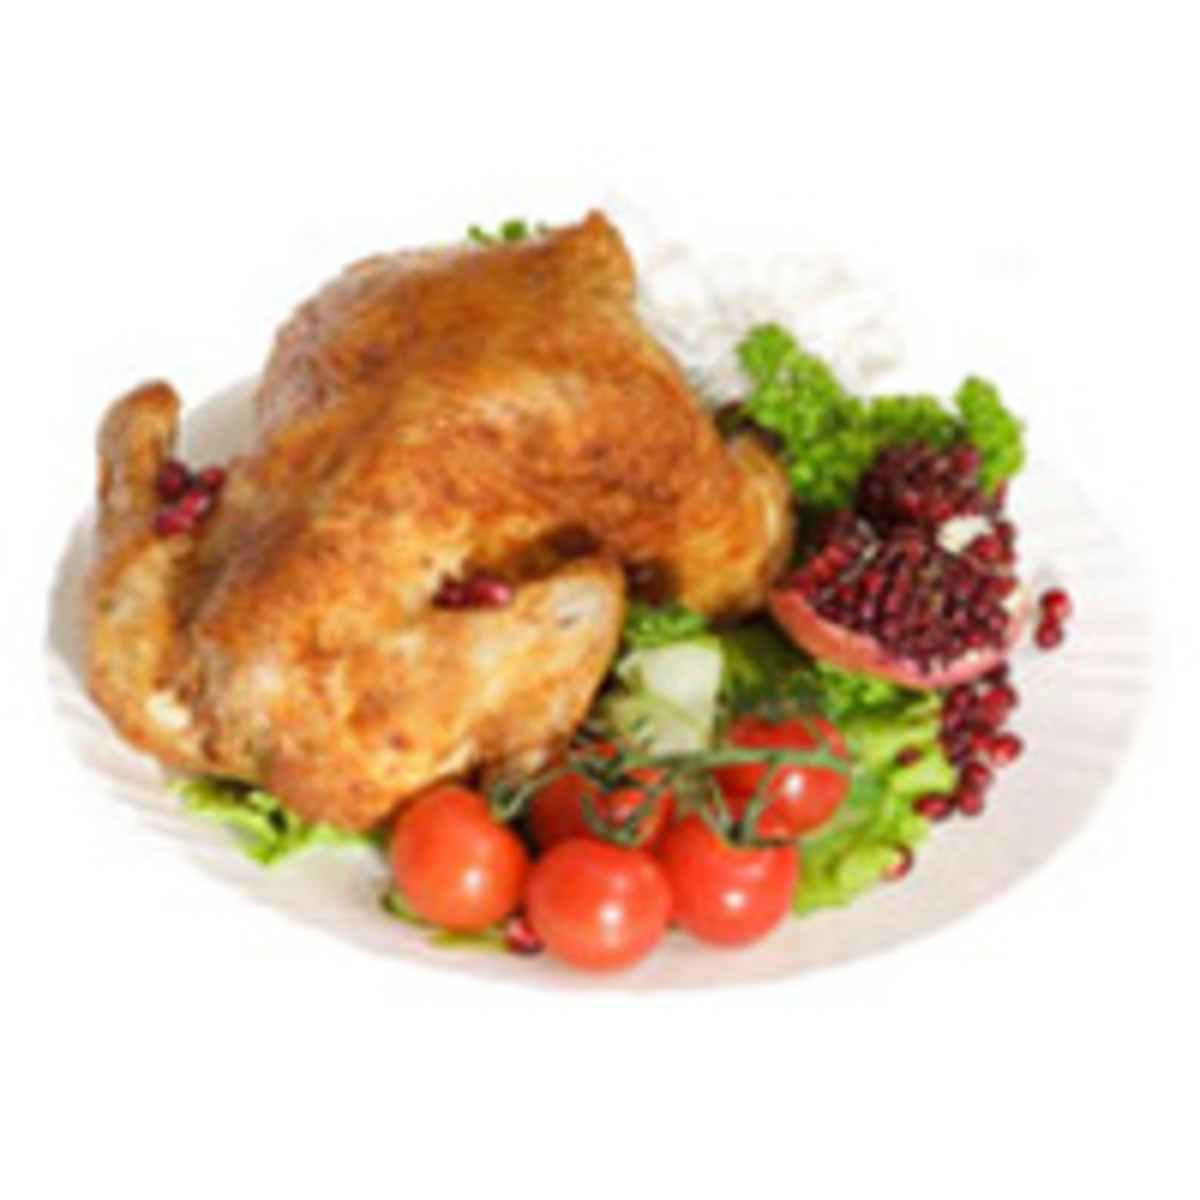 Roasted Chicken with Apple, Leek and Pomegranate